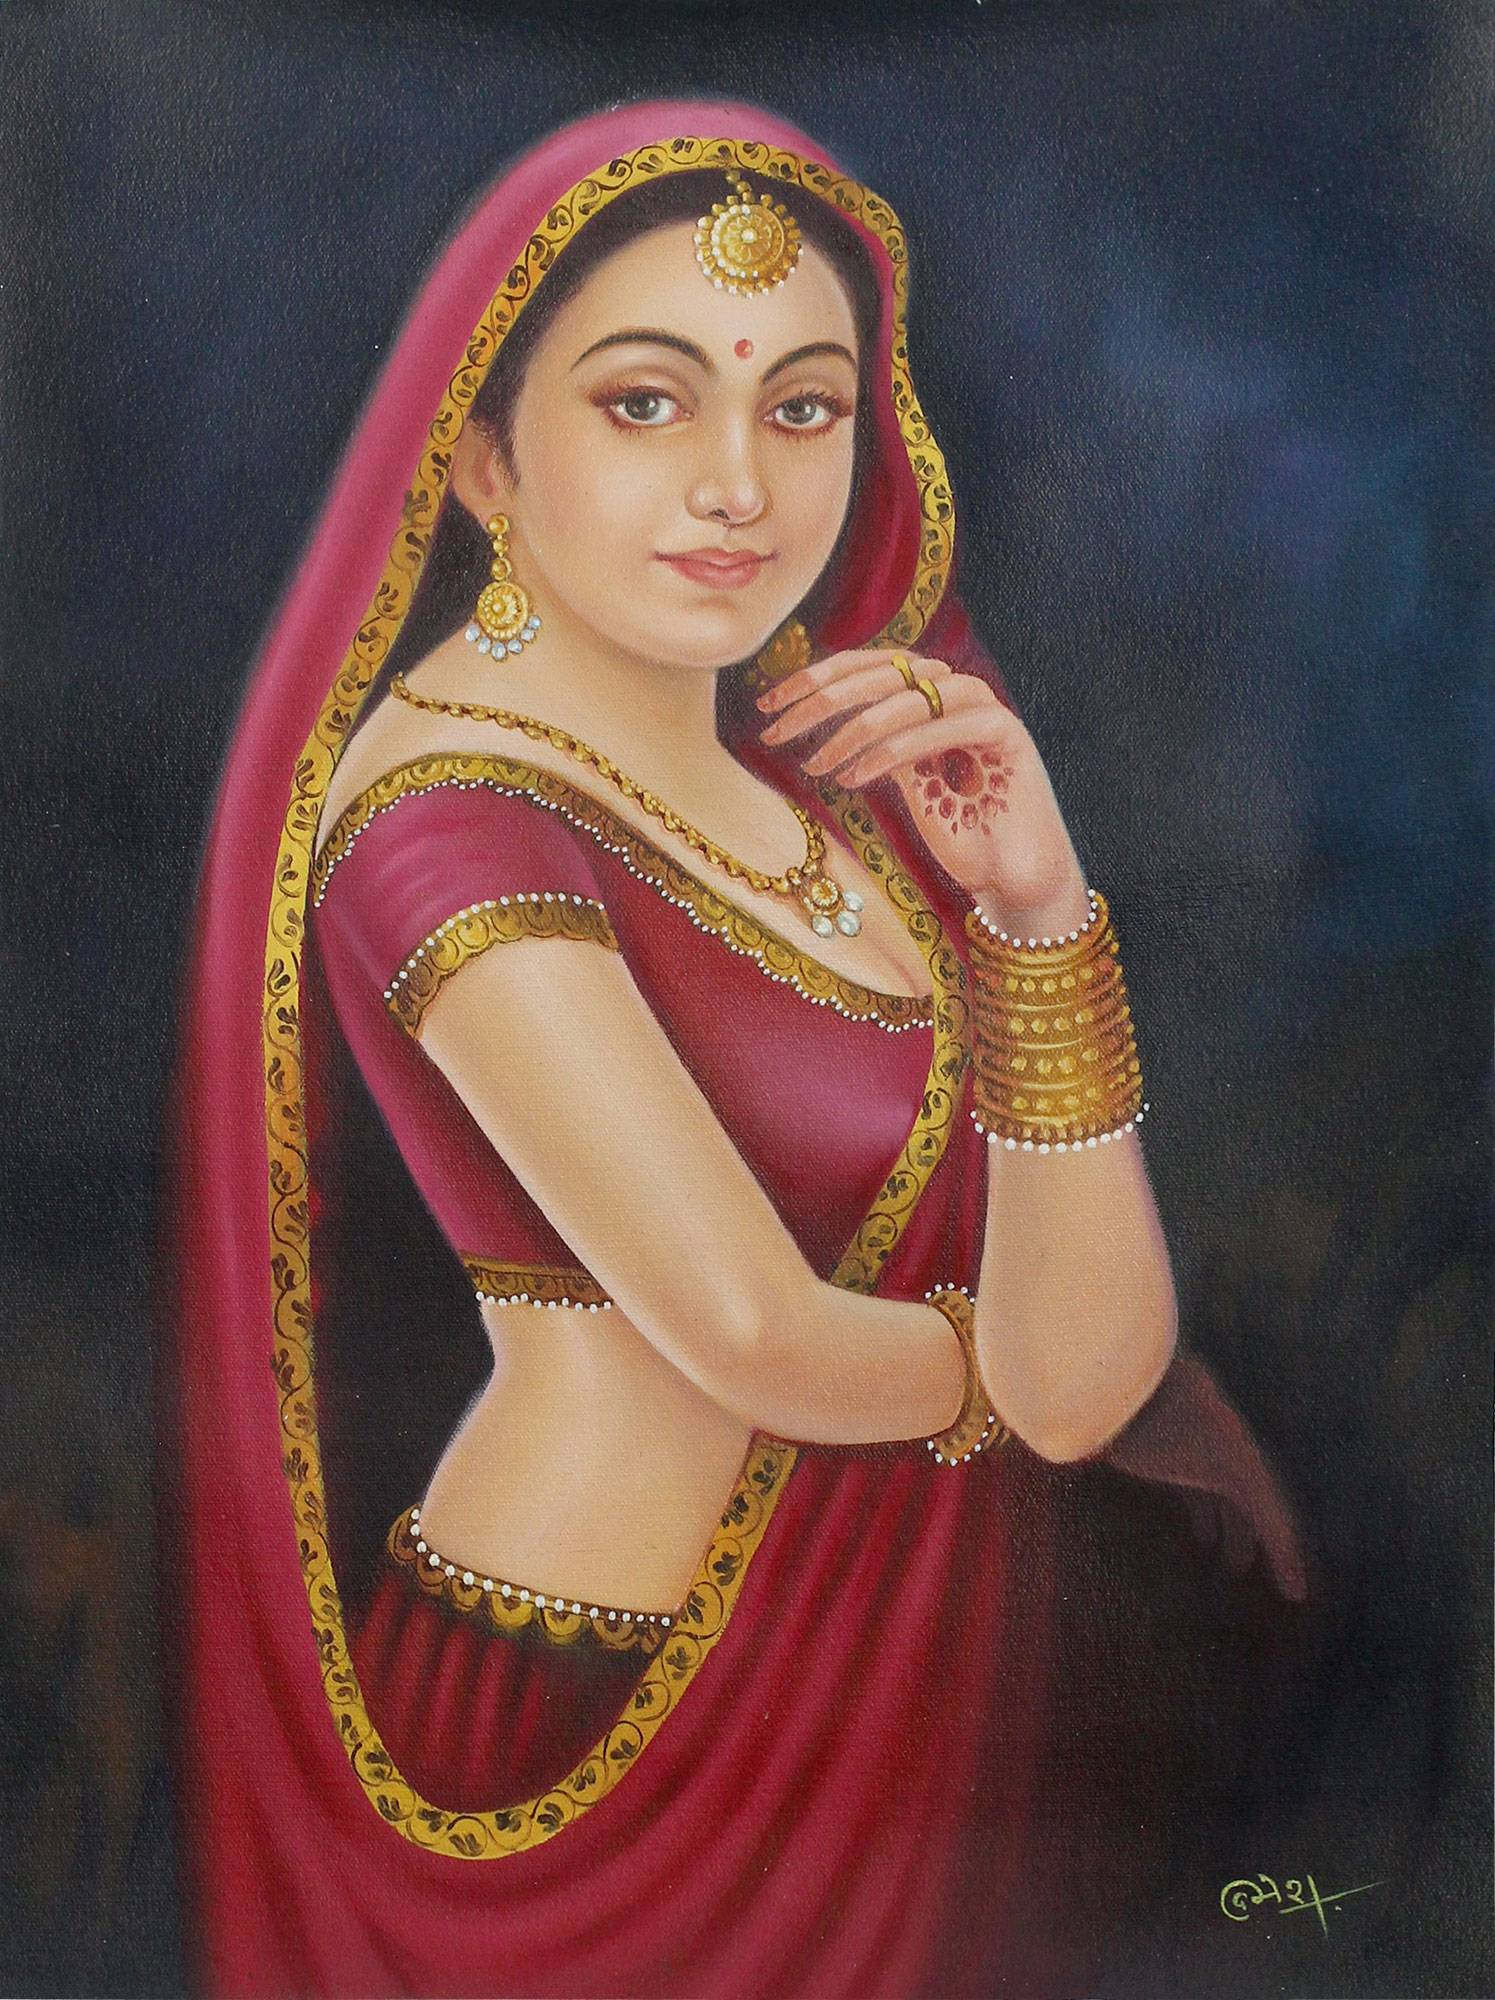 Bollywood Style Oil Painting Of Beautiful Indian Woman Rajasthani Beauty Iv